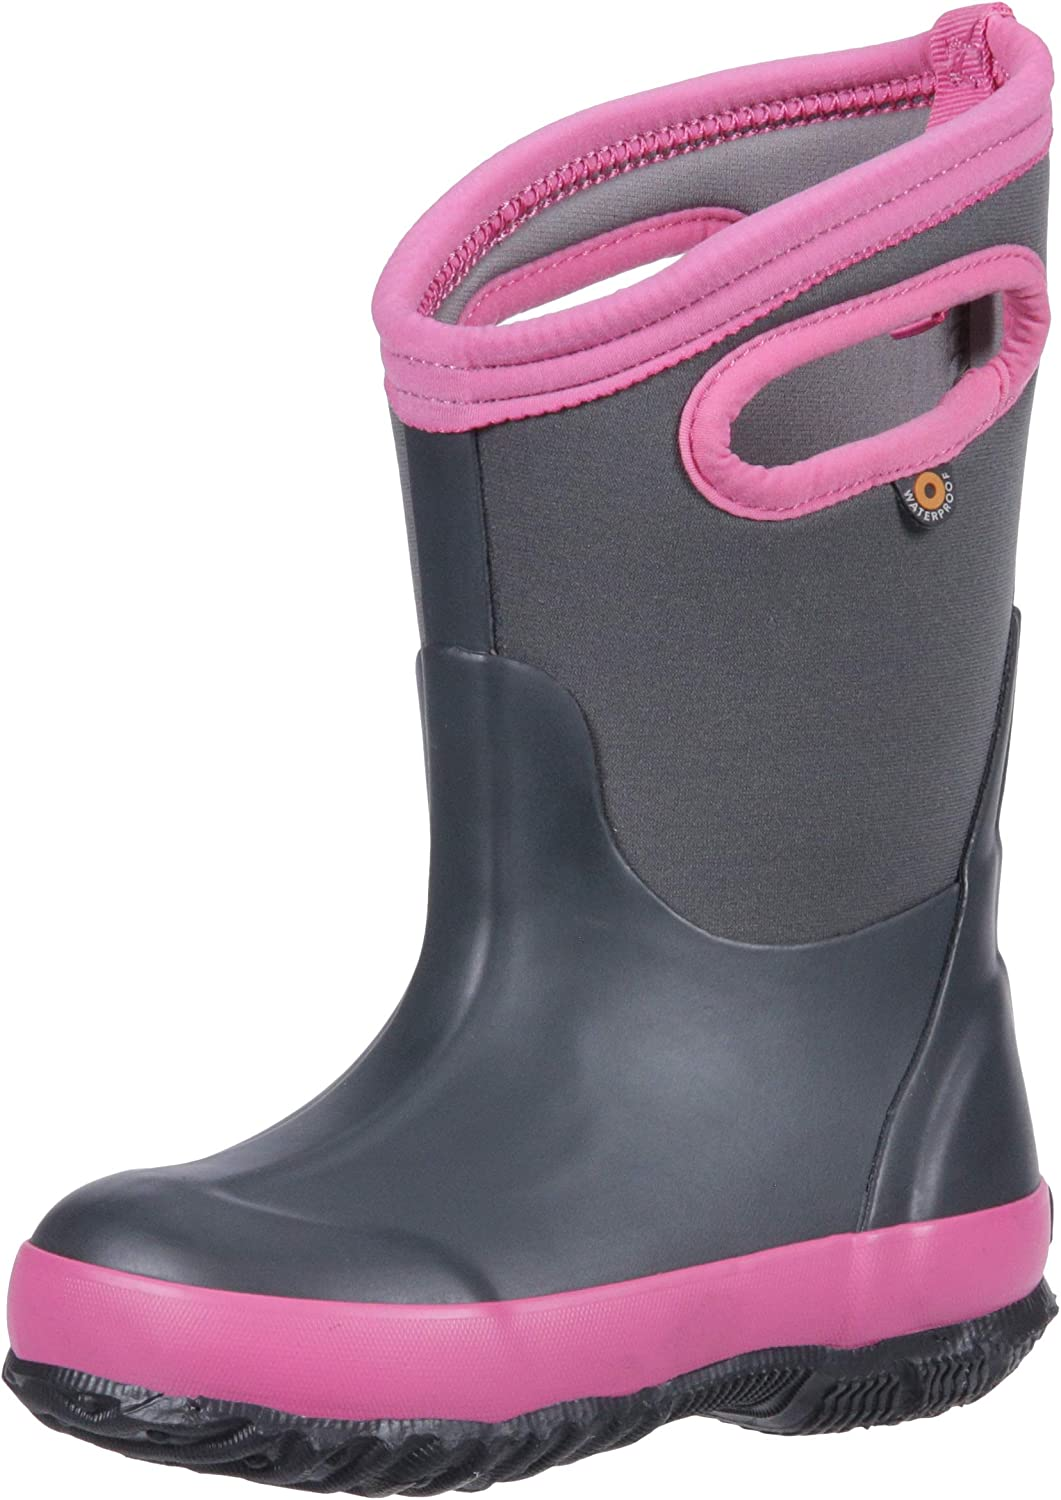 Multiple Color Options Girls and Toddlers Bogs Kids Classic High Waterproof Insulated Rubber Rain and Winter Snow Boot for Boys